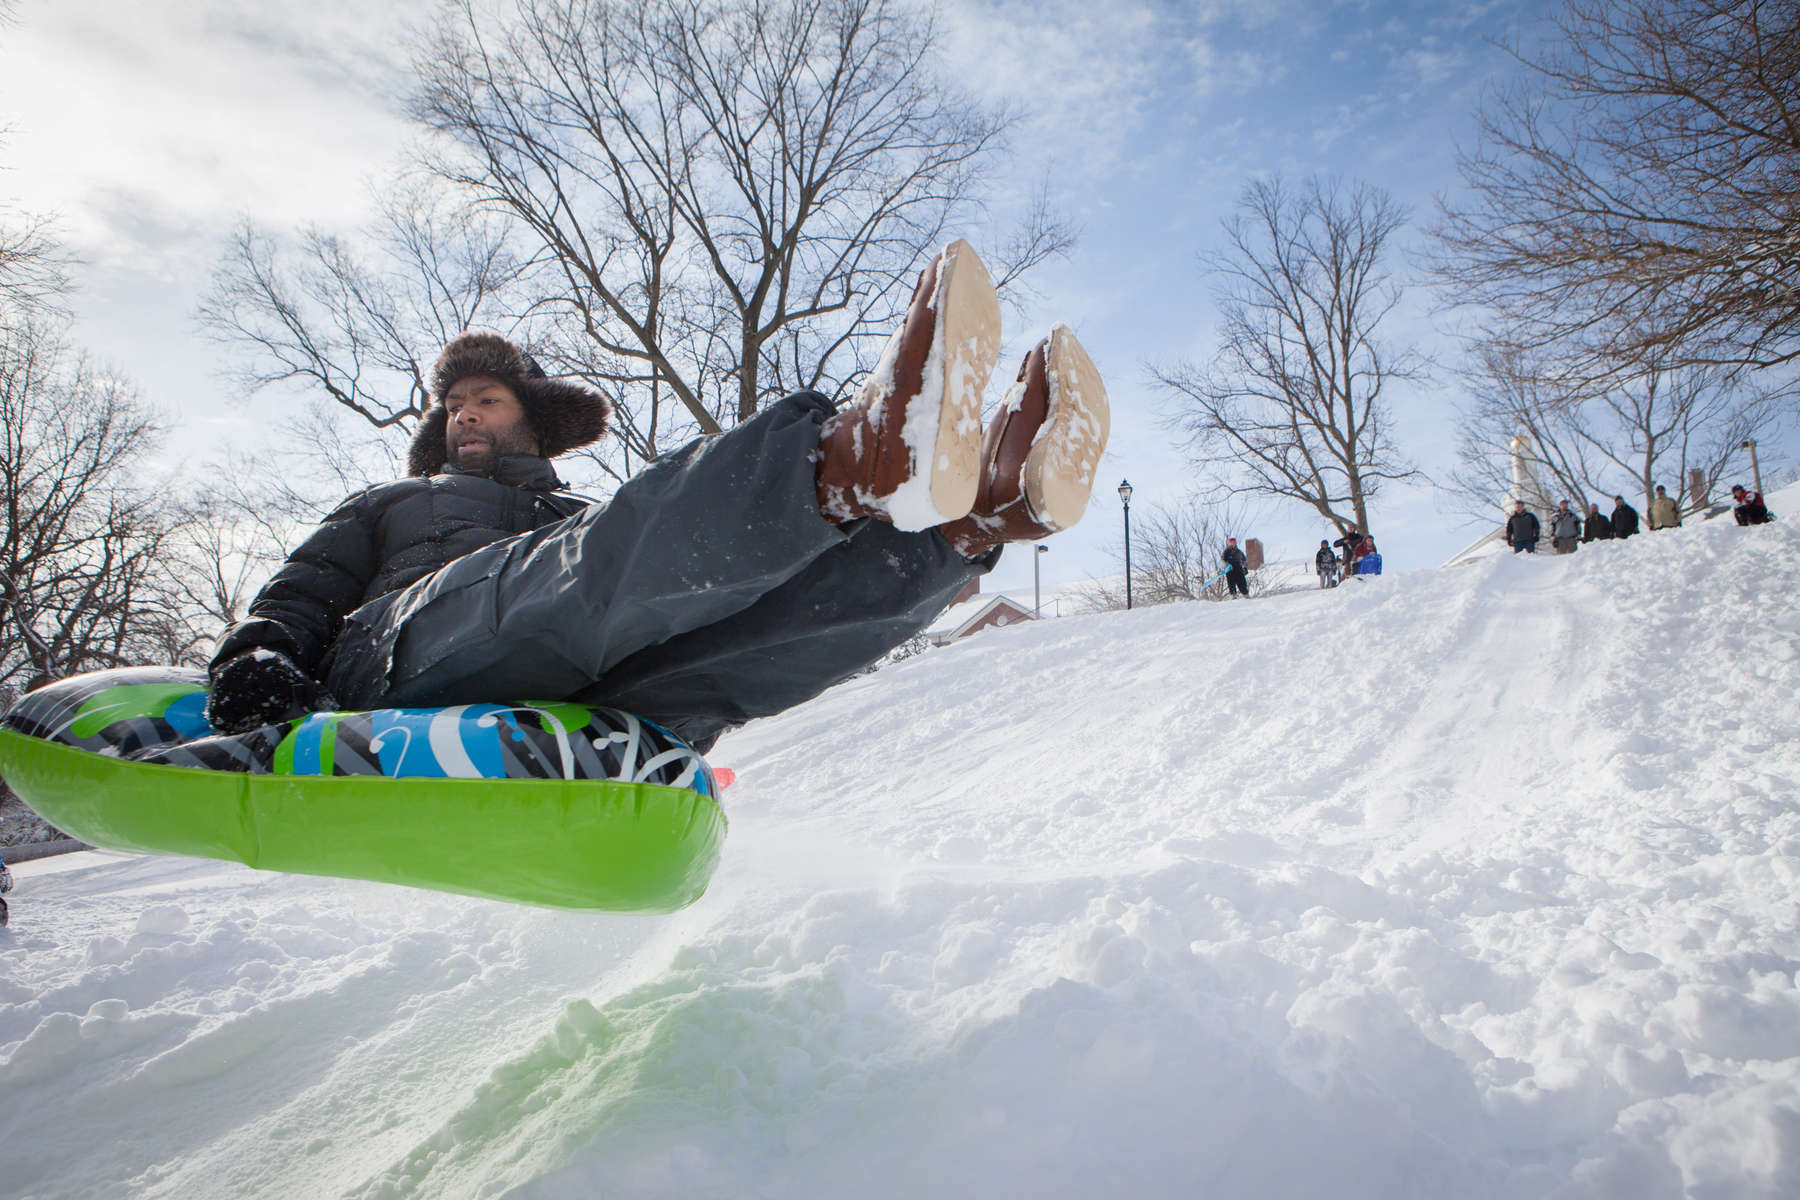 A member of the Yale University community takes a break from his daily routine to sled down a hill on the snowiest day of the winter. Yale Alumni Magazine